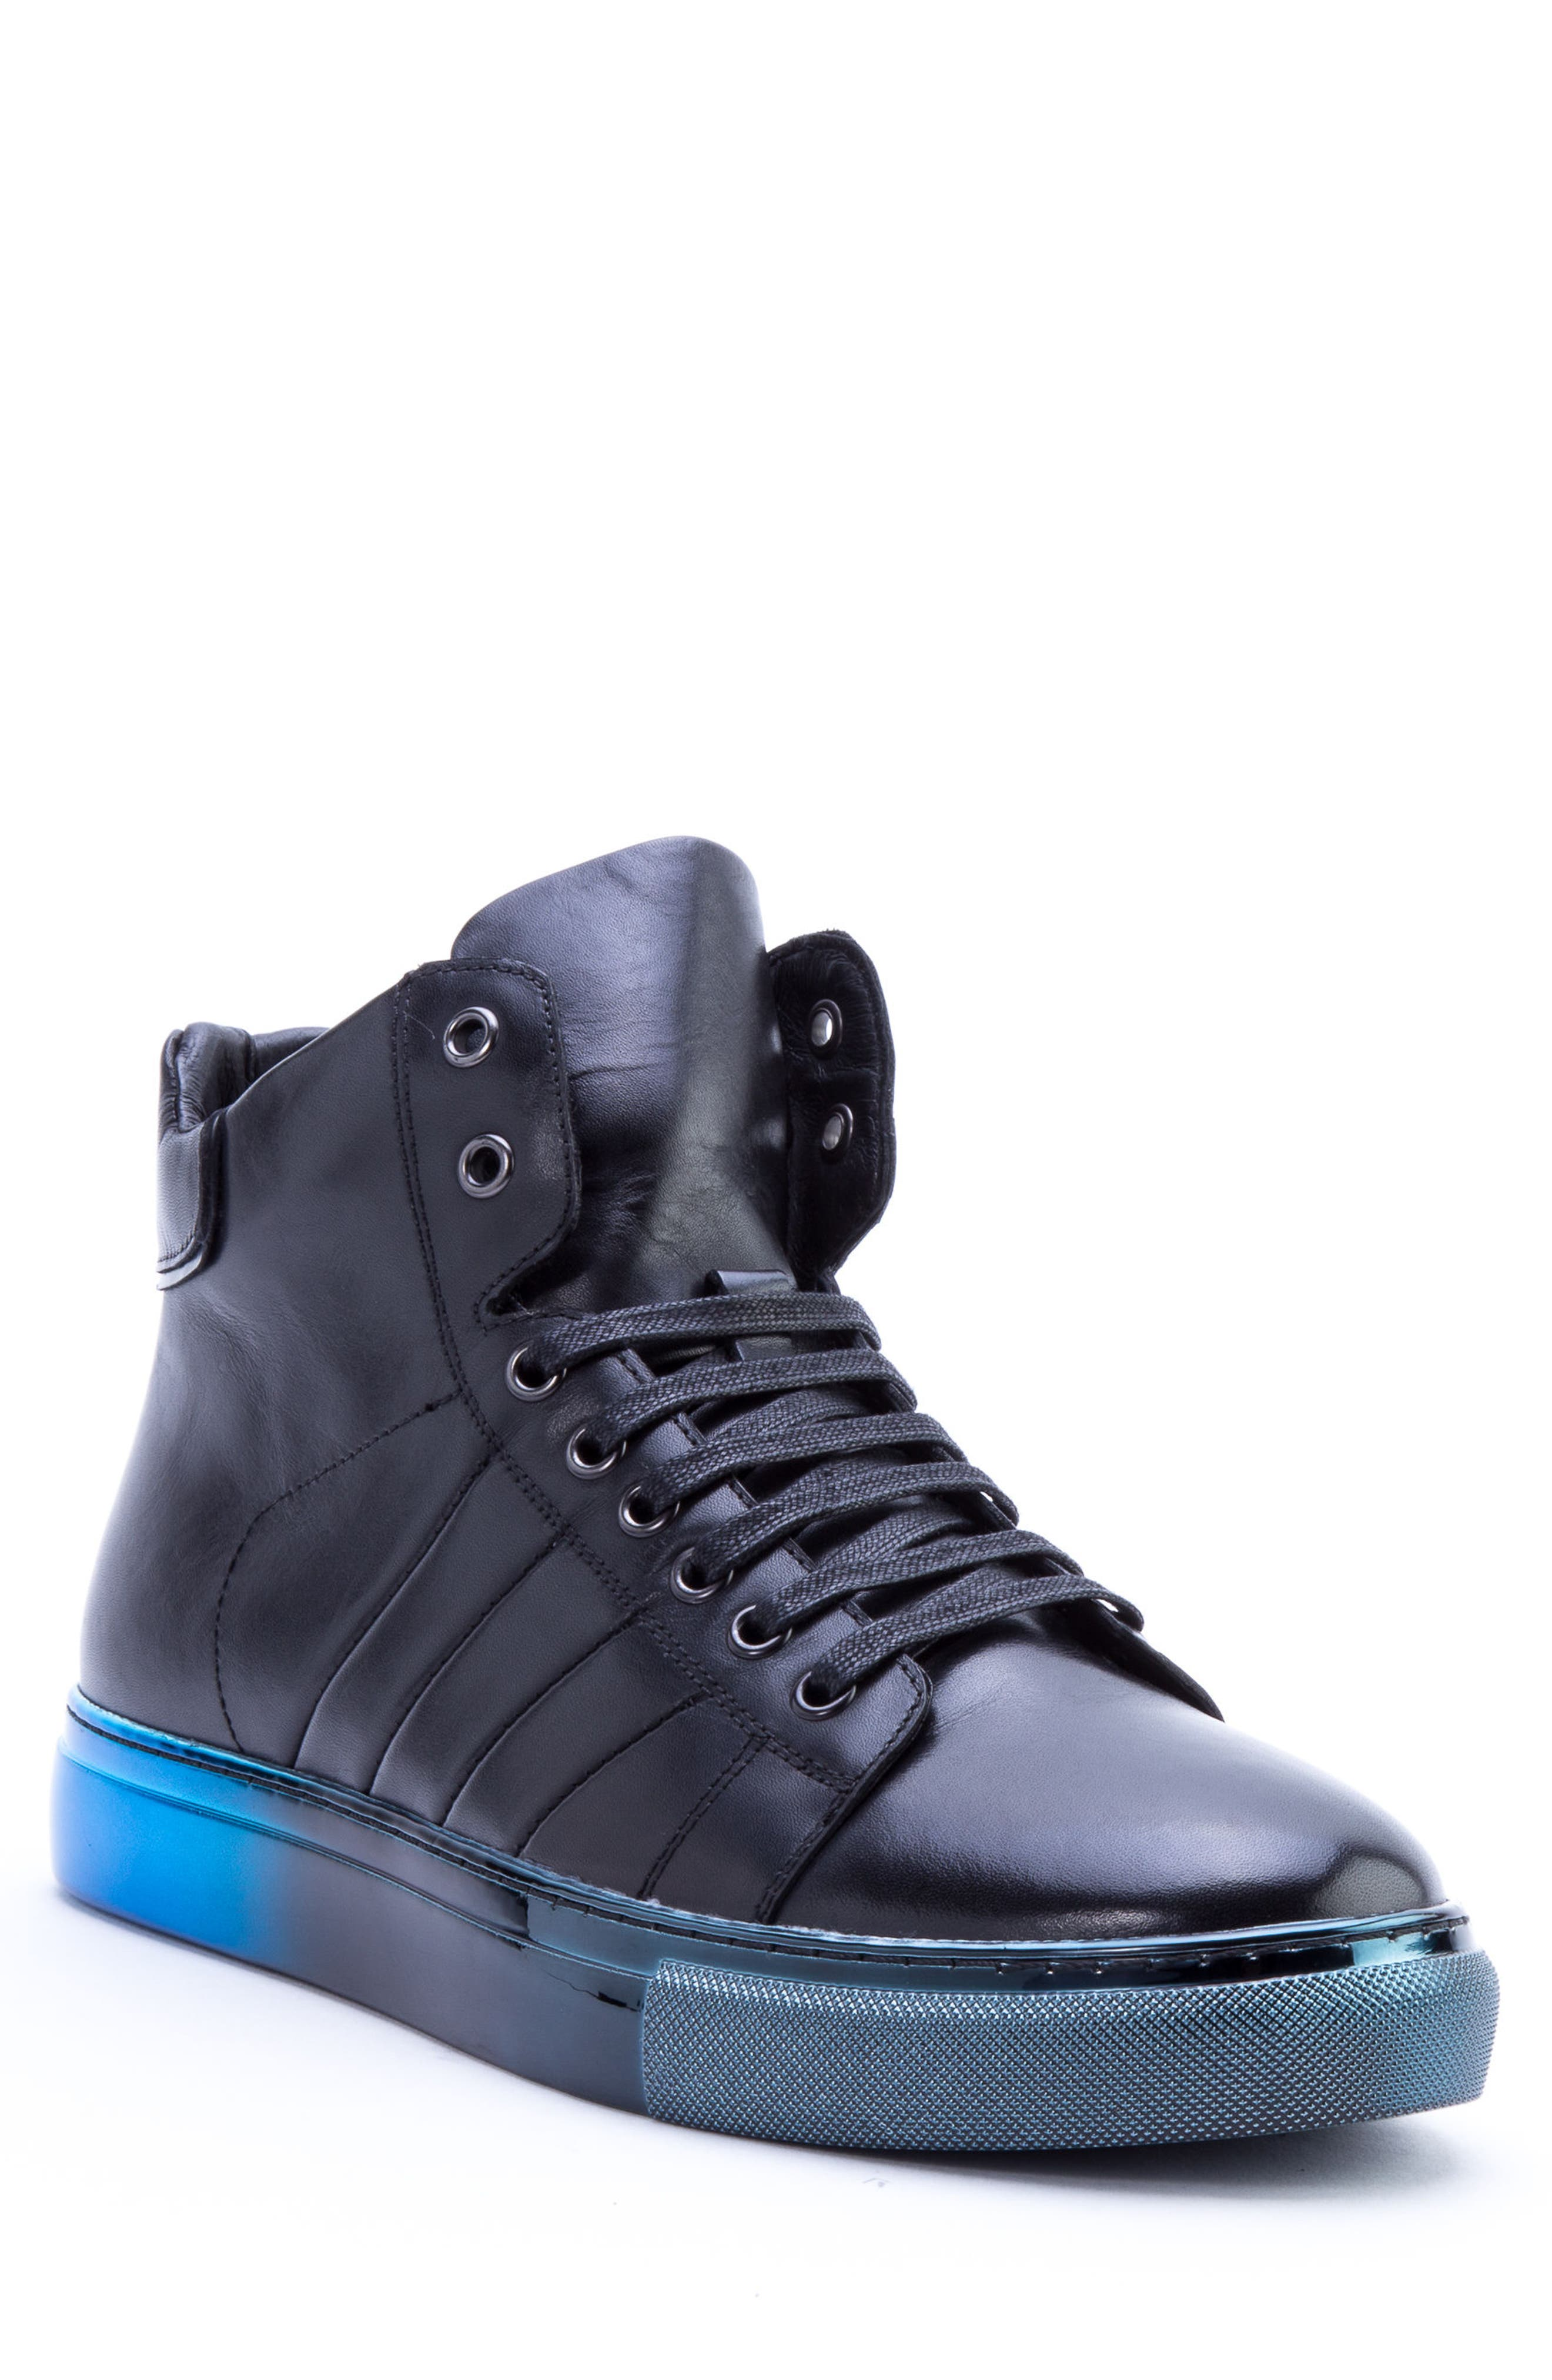 Hunter High Top Sneaker,                             Main thumbnail 1, color,                             NAVY LEATHER